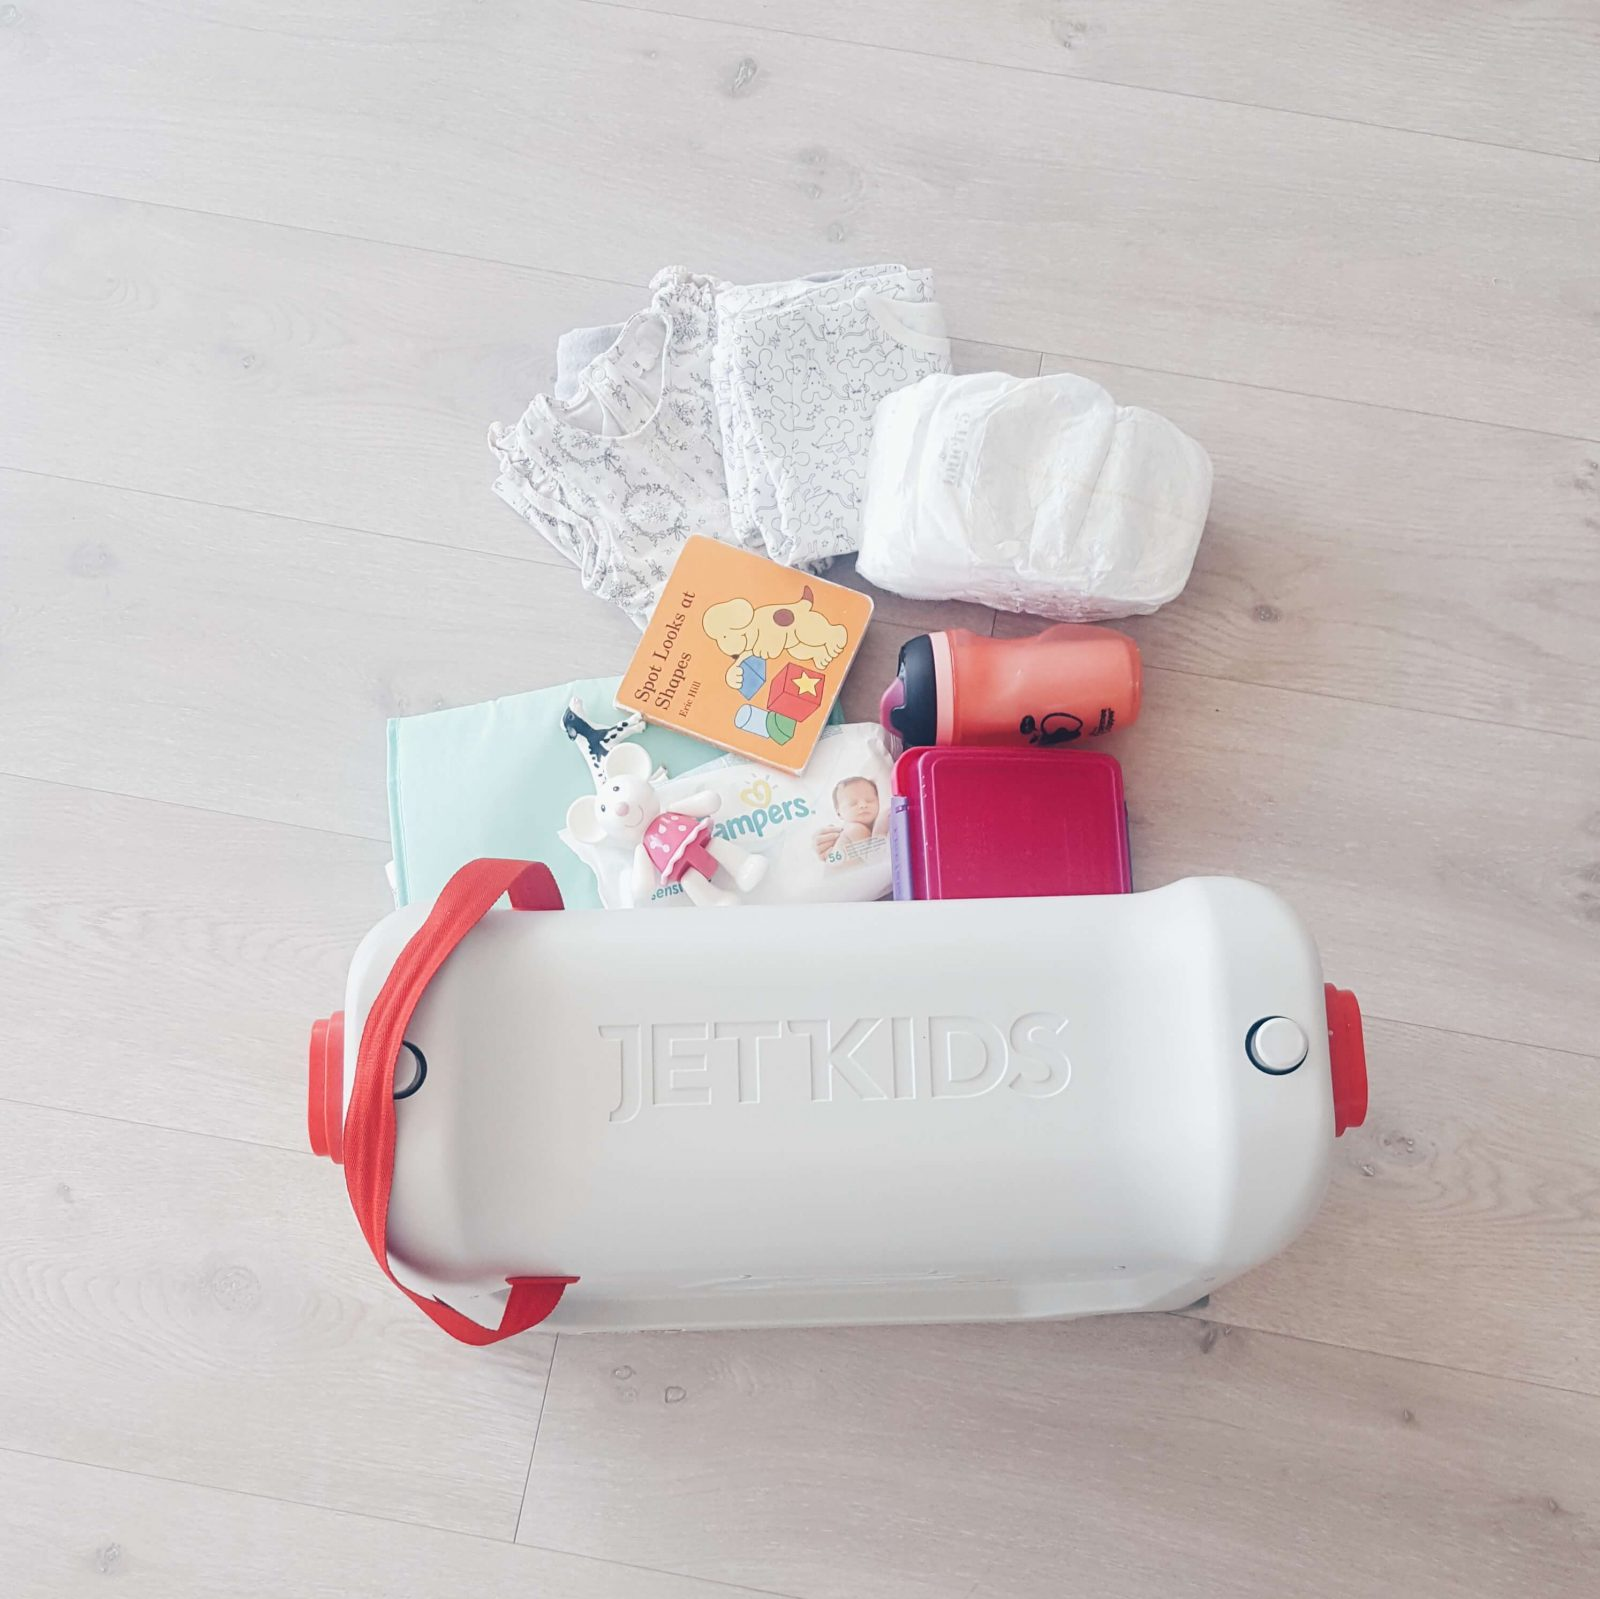 flatlay of items by bedbox